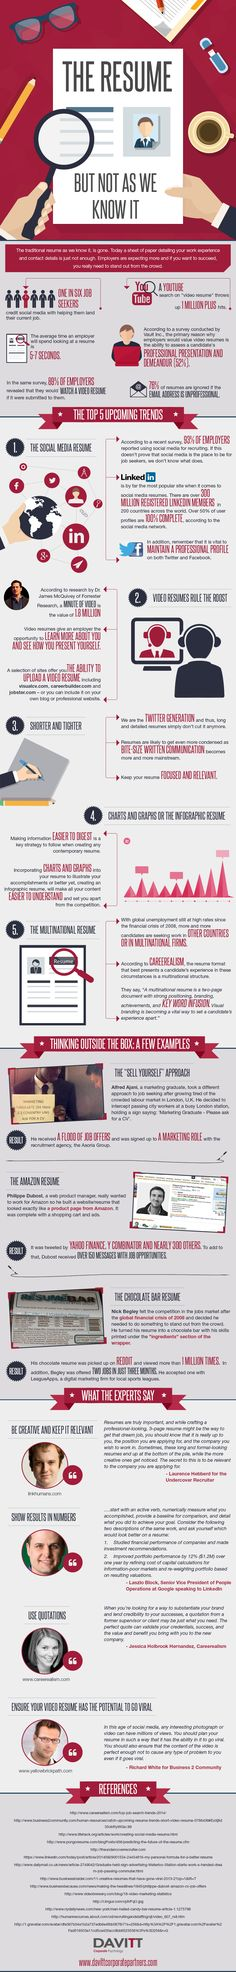 You Need More Than A Paper Resume [INFOGRAPHIC]